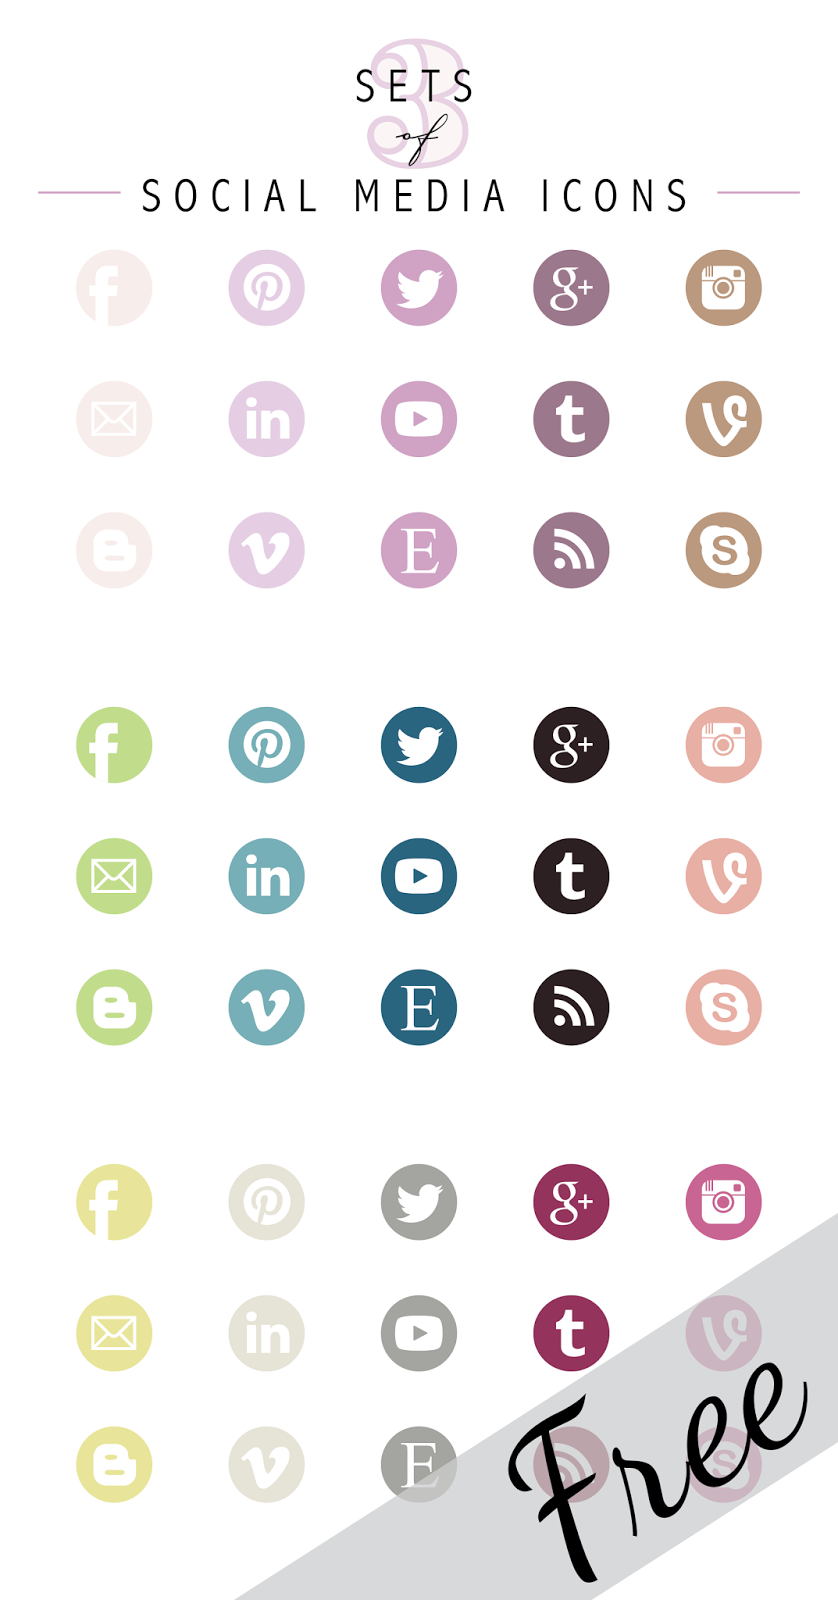 Social Media Icons Set Social media icons, Media icon